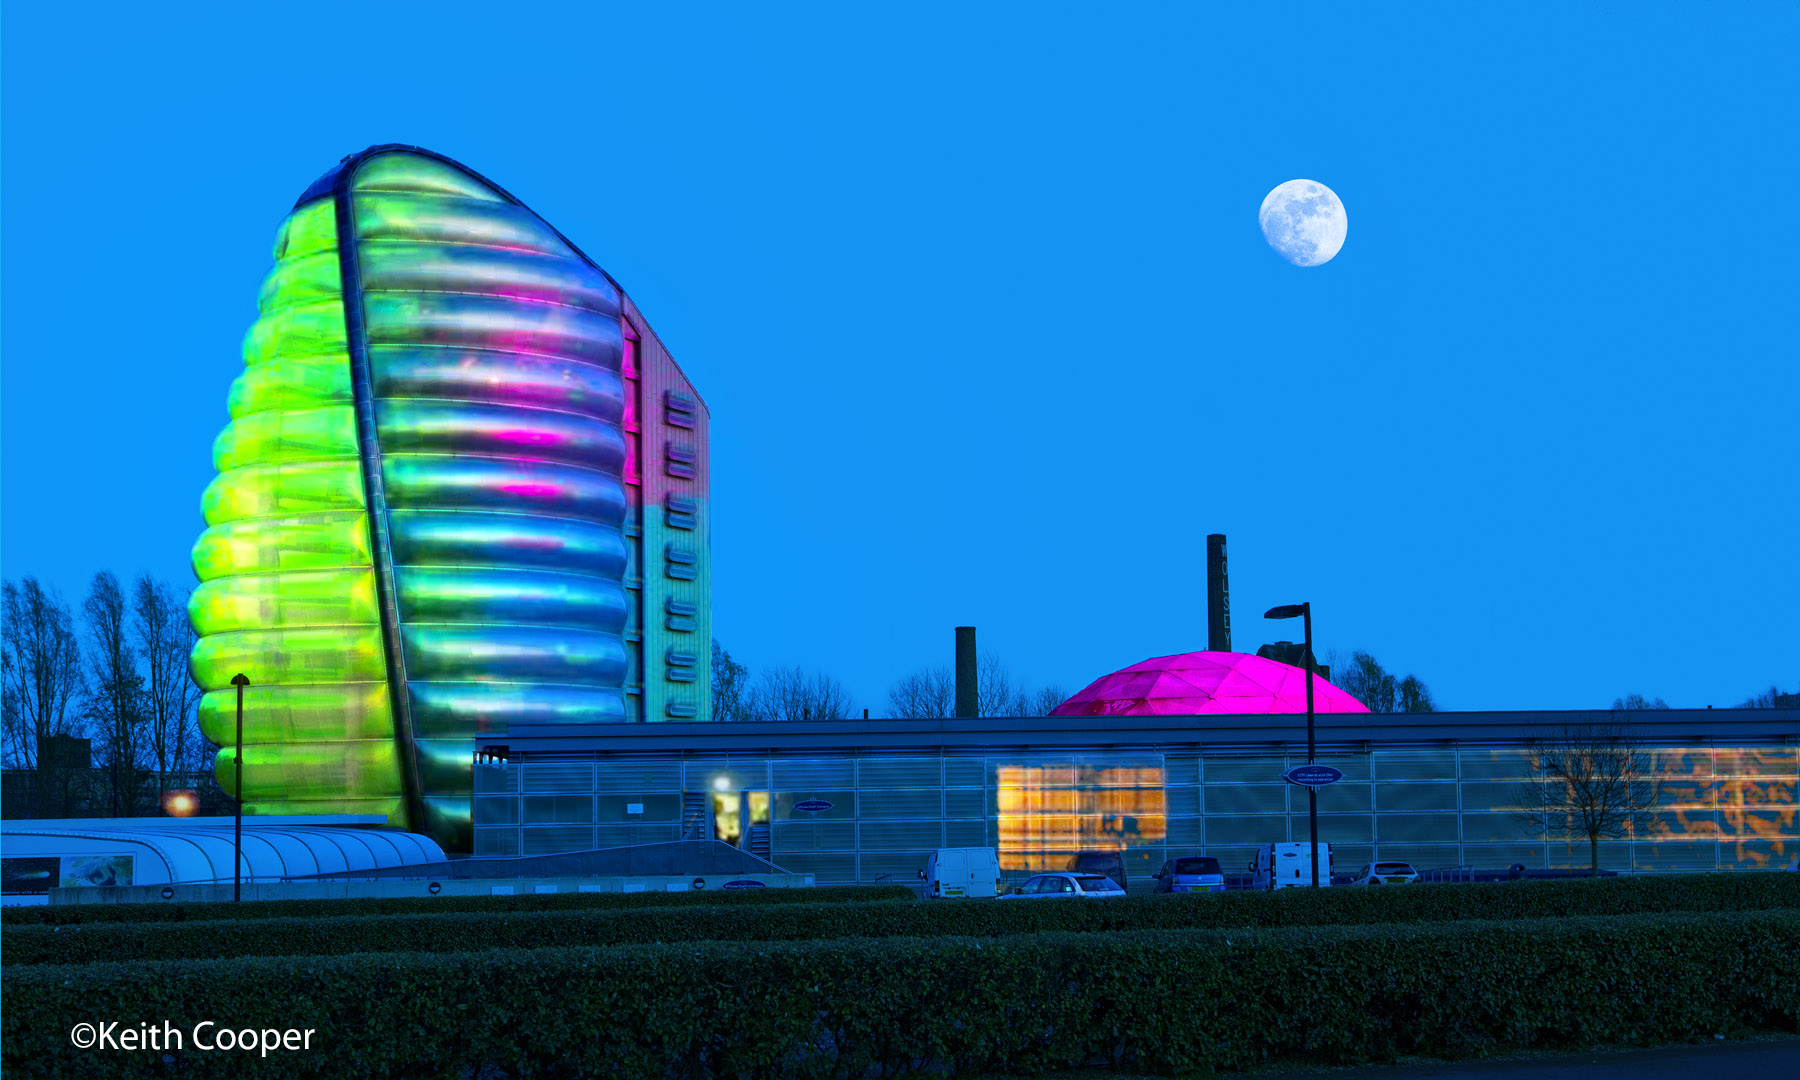 Moonrise, National Space Centre